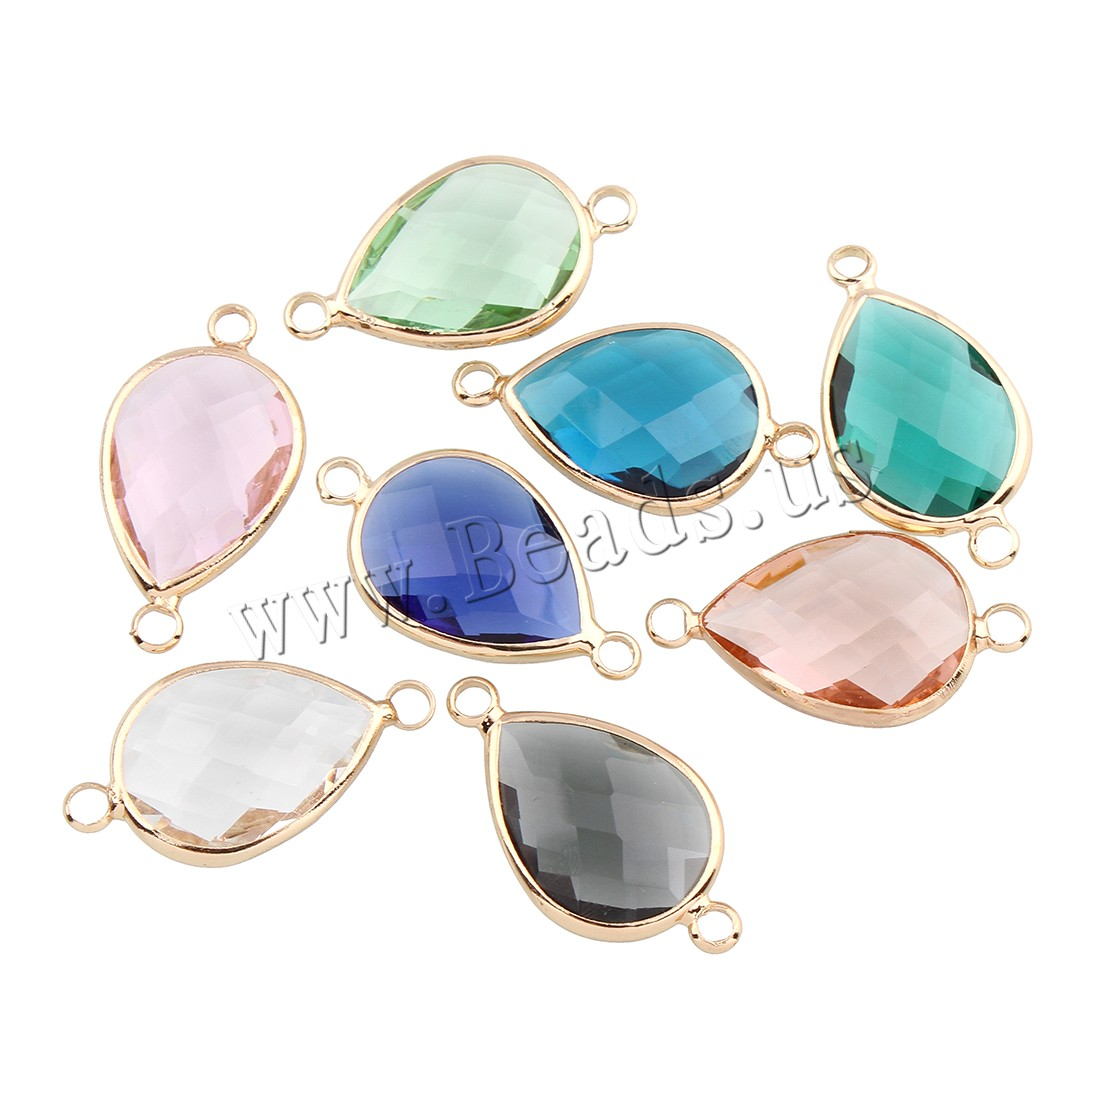 Buy Brass Connector Crystal Teardrop gold color plated faceted & 1/1 loop colors choice nickel lead & cadmium free 25x14x5mm Hole:Approx 2mm 5PCs/Bag Sold Bag